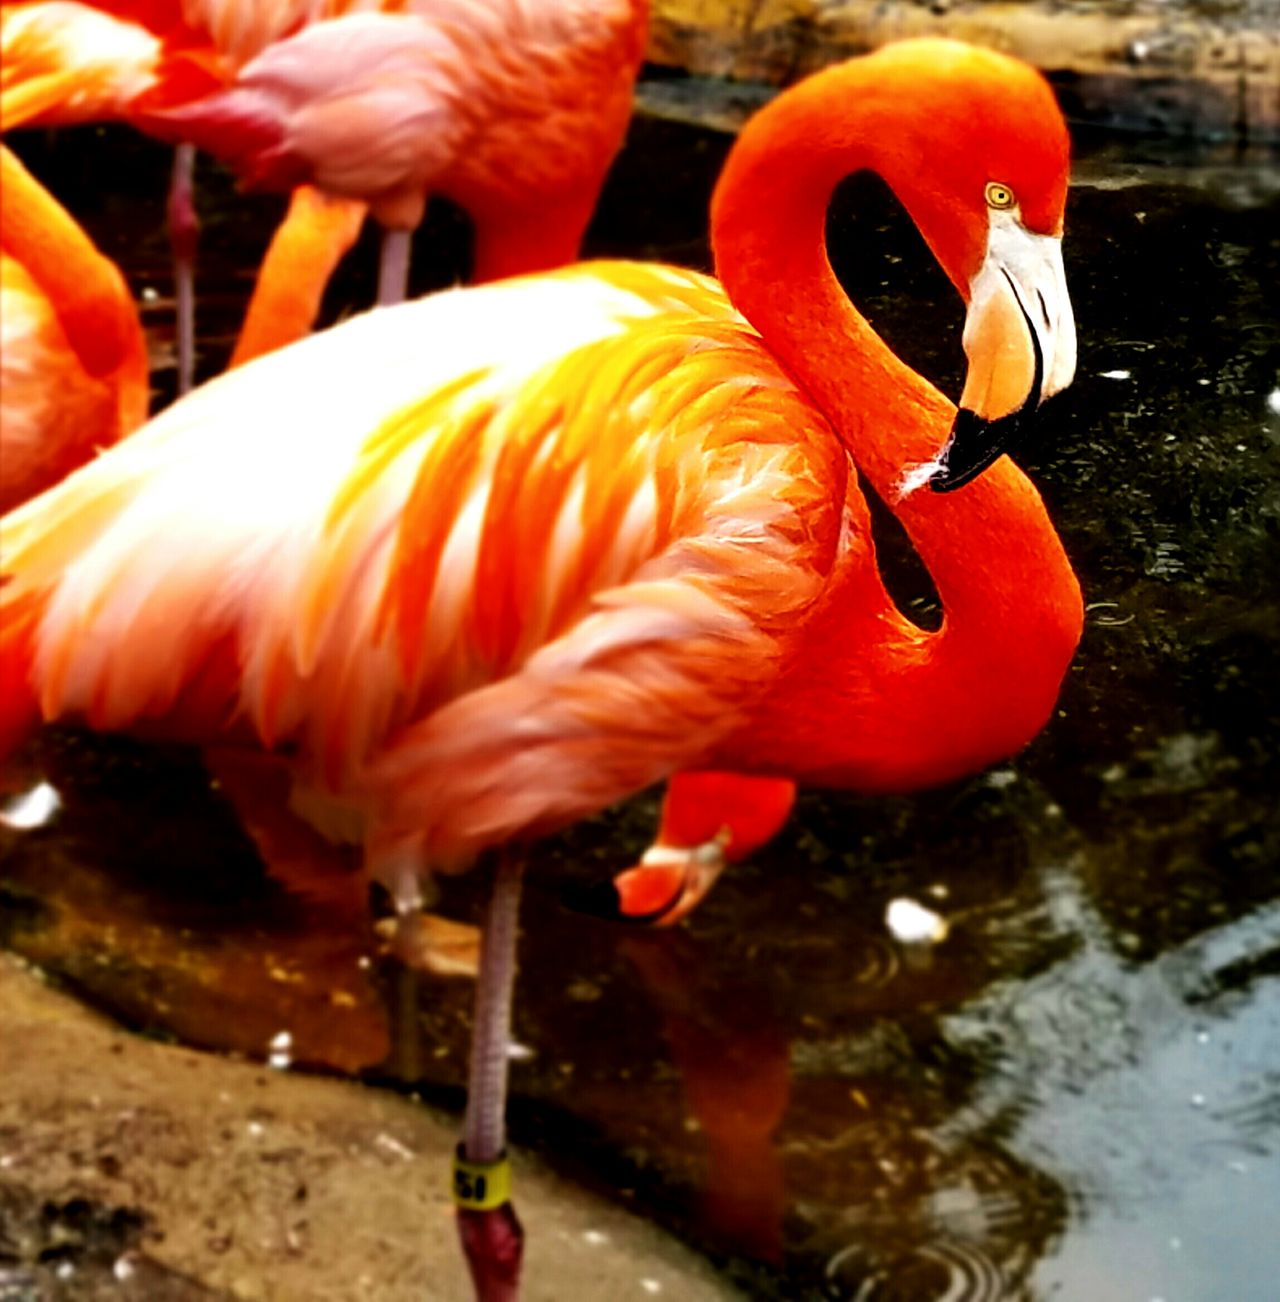 Flamingo Water Flamingo Animal Themes Orange Color Bird Animals In The Wild Outdoors Day Close-up Nature Animal Wildlife Beak No People Pink ZOO-PHOTO Birds Wildlife Zoo Birds🐦⛅ One Leg Flamingo At The Zoo Flamingos Flamingo Beauty Shapes And Lines Zoophotography